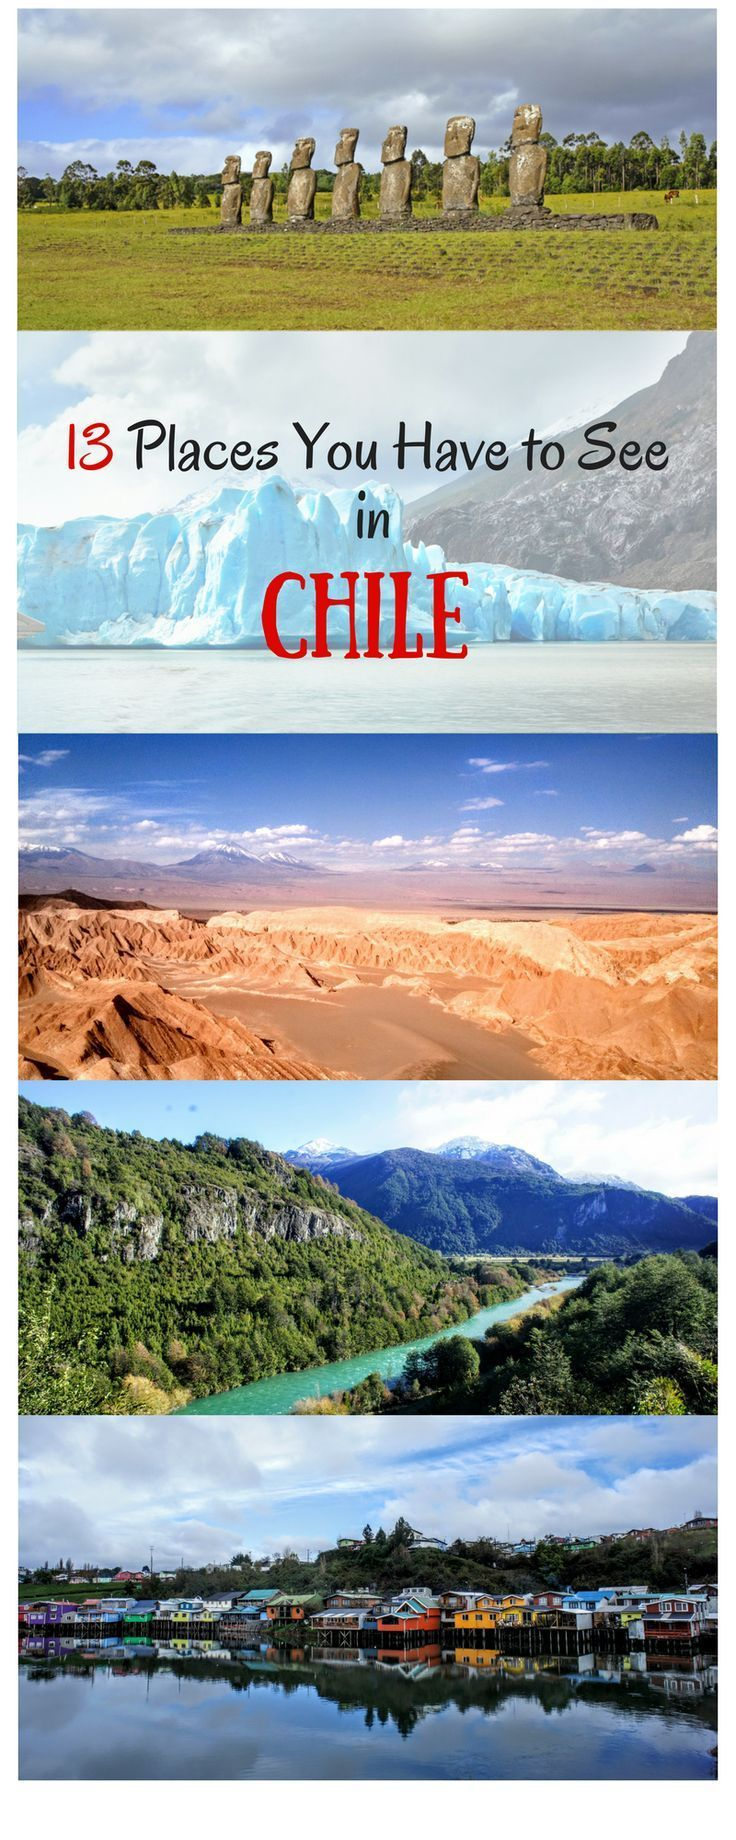 Must sees in Chile